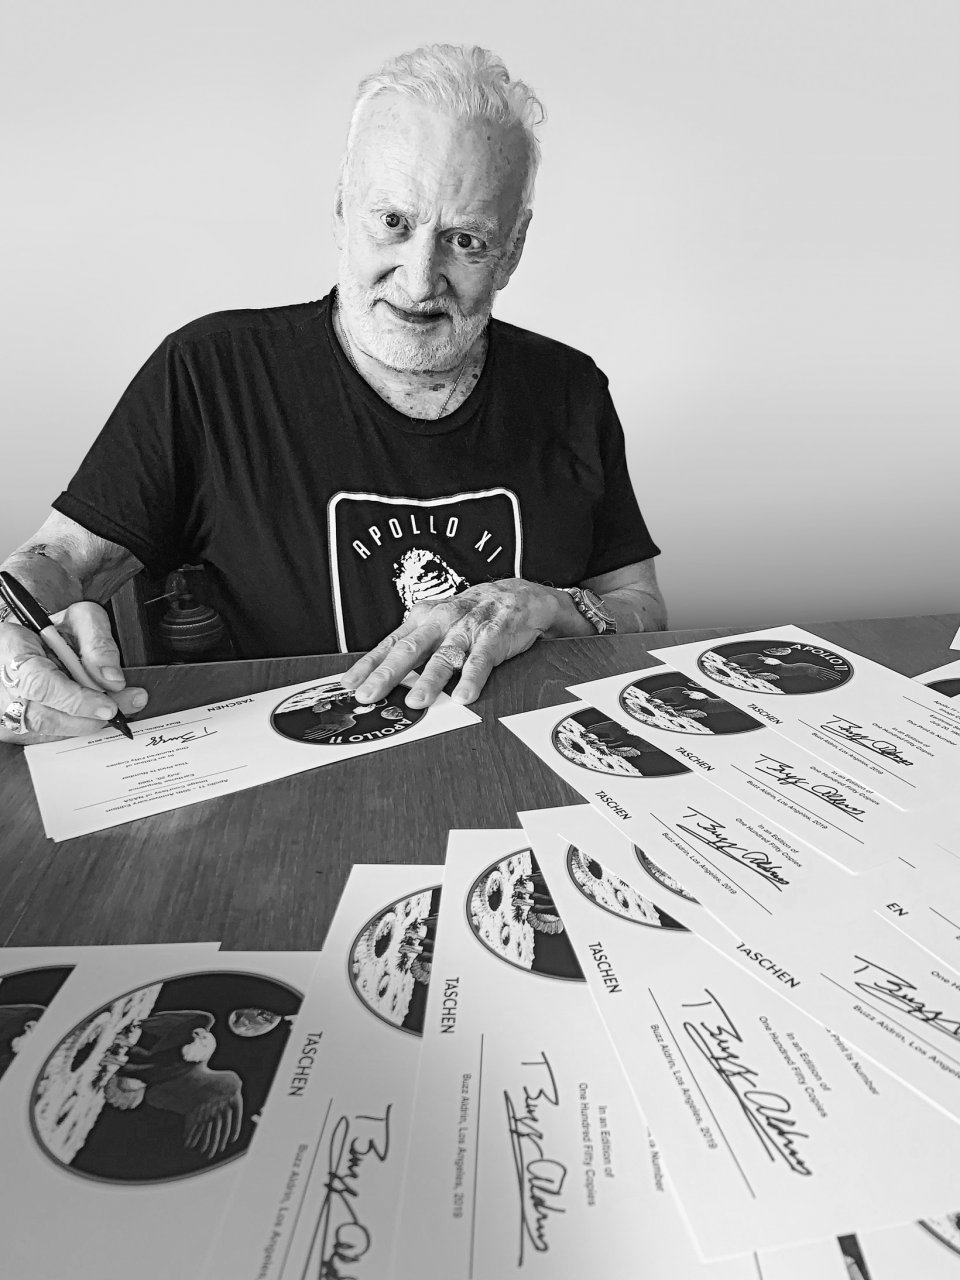 Astronaut Buzz Aldrin signs special edition NASA prints.